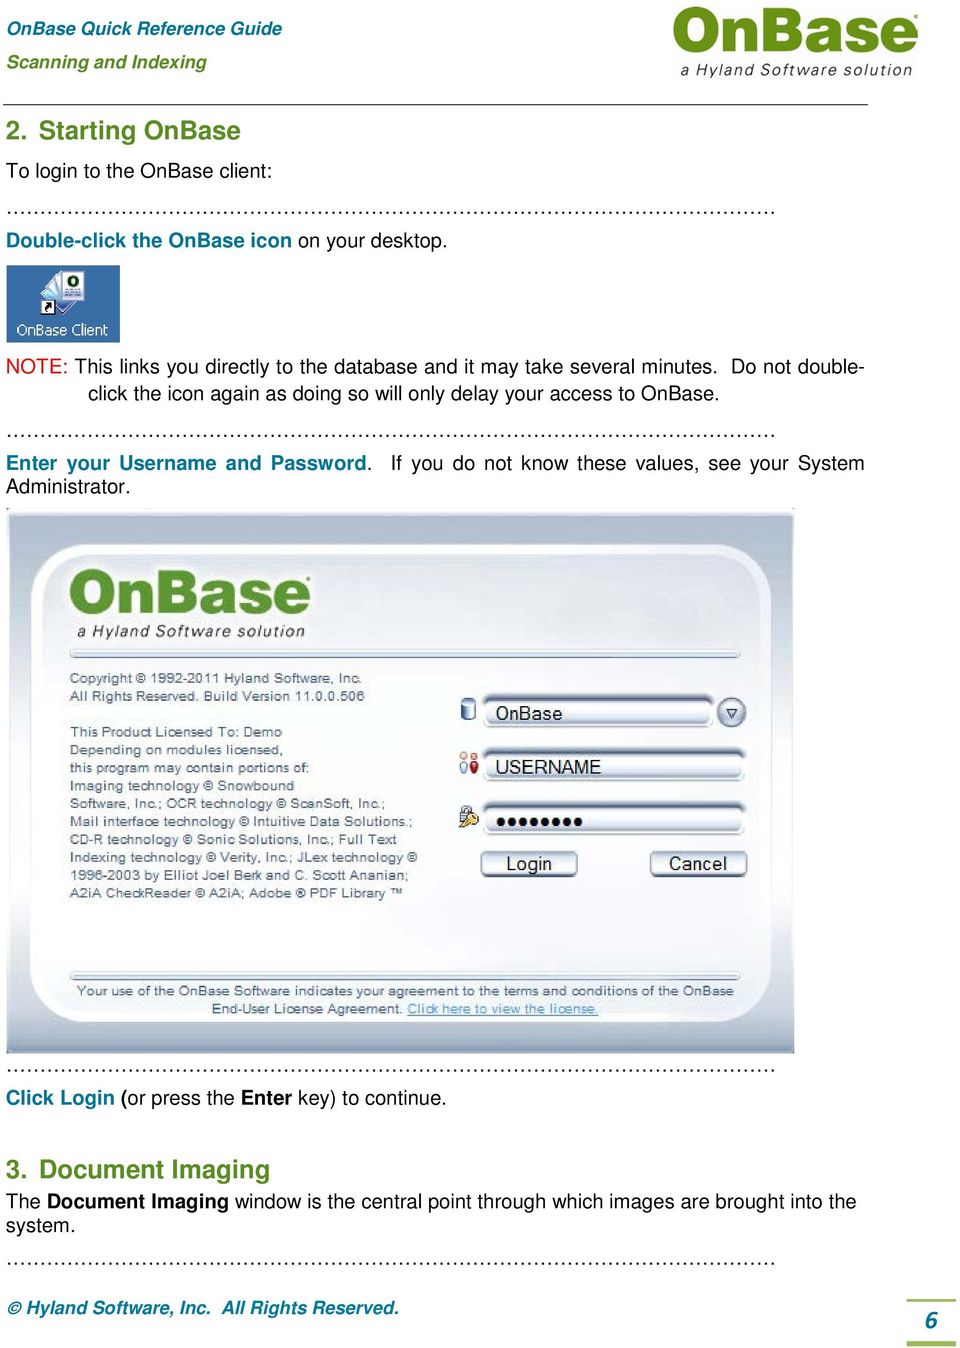 onbase quick reference guide pdf rh docplayer net Hyland Software Logo Hyland Software Logo